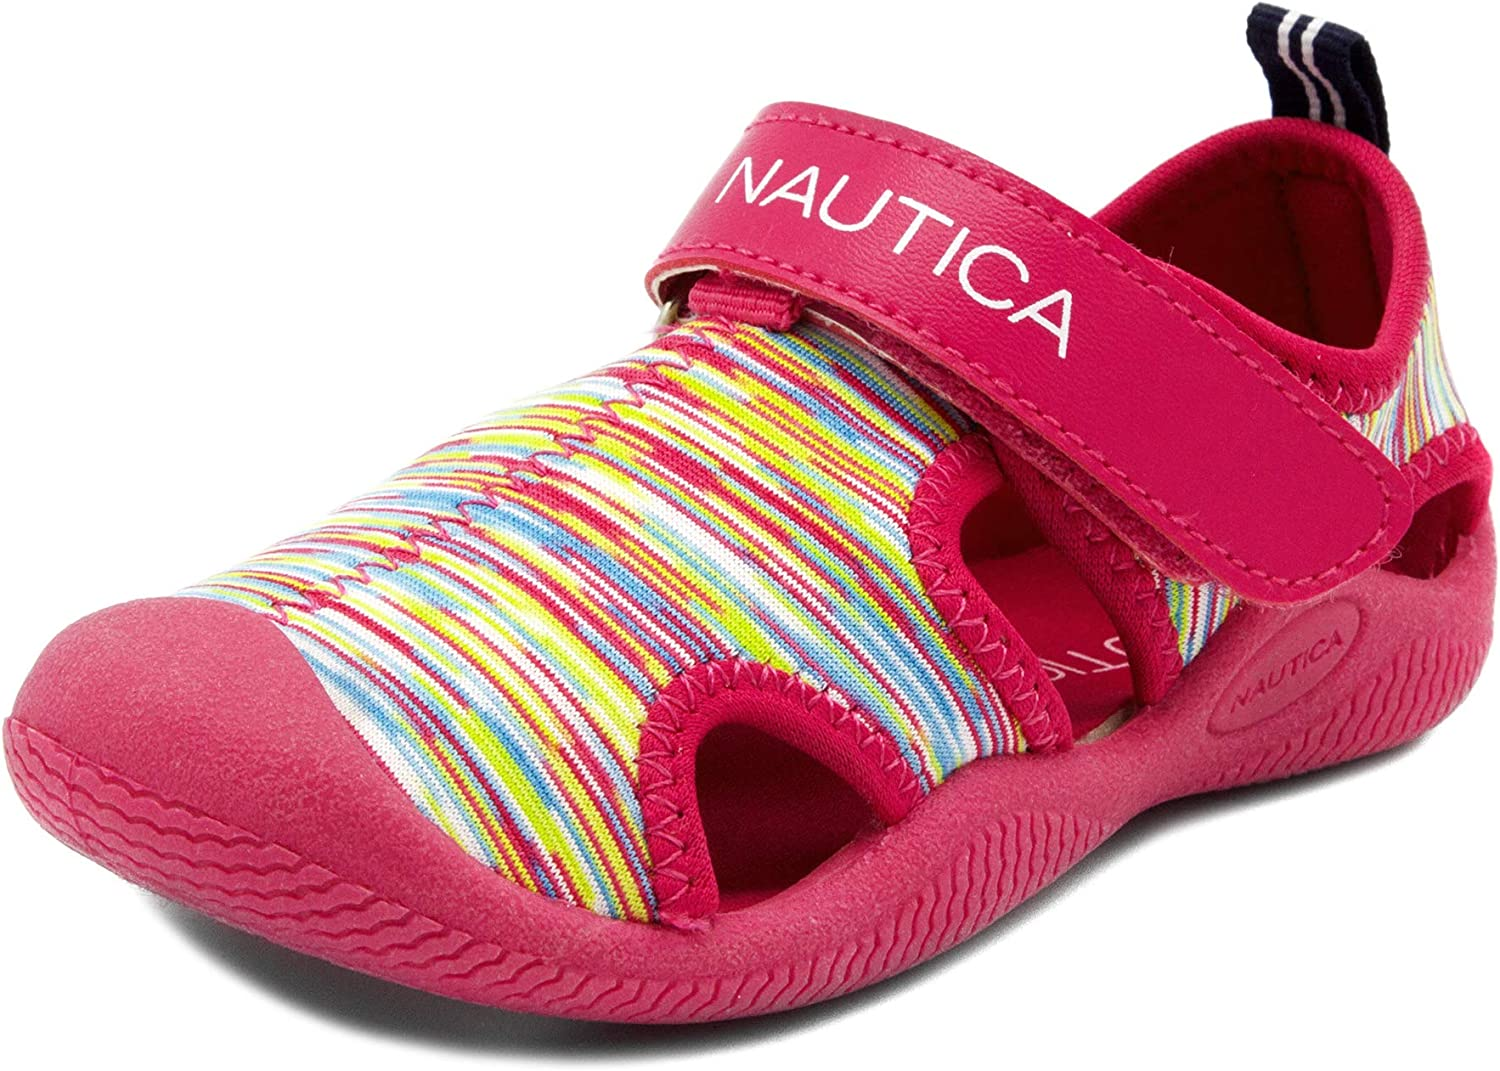 Nautica Kids Kettle Gulf Protective Water Shoe,Closed-Toe Sport Sandal Toddler//Little Kid